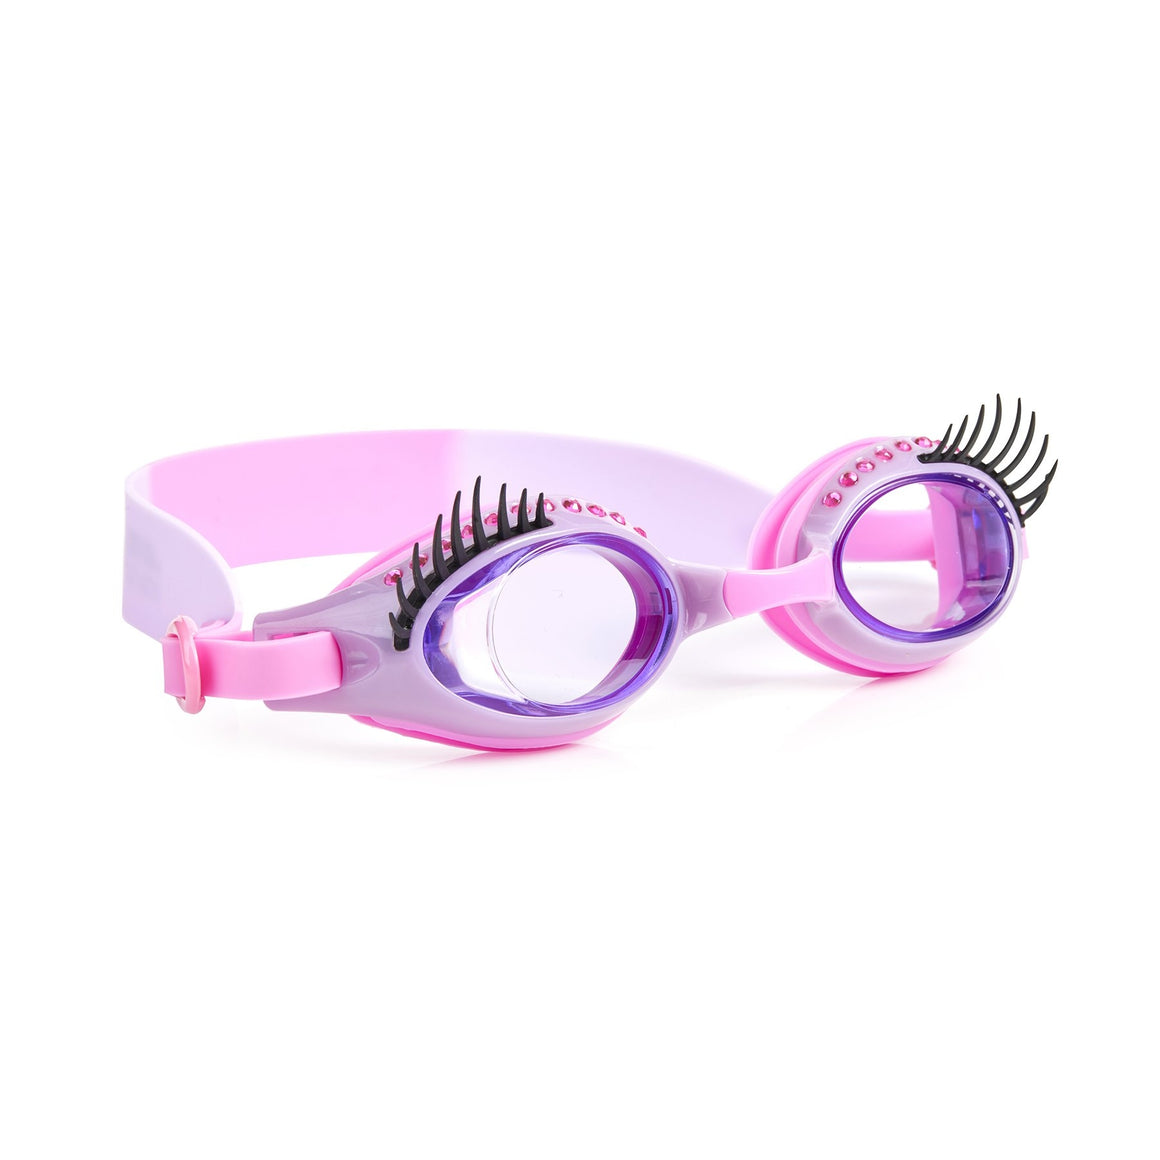 Bling2O | Girls Glam Lash Swim Goggles | Make-Up Artist Purple